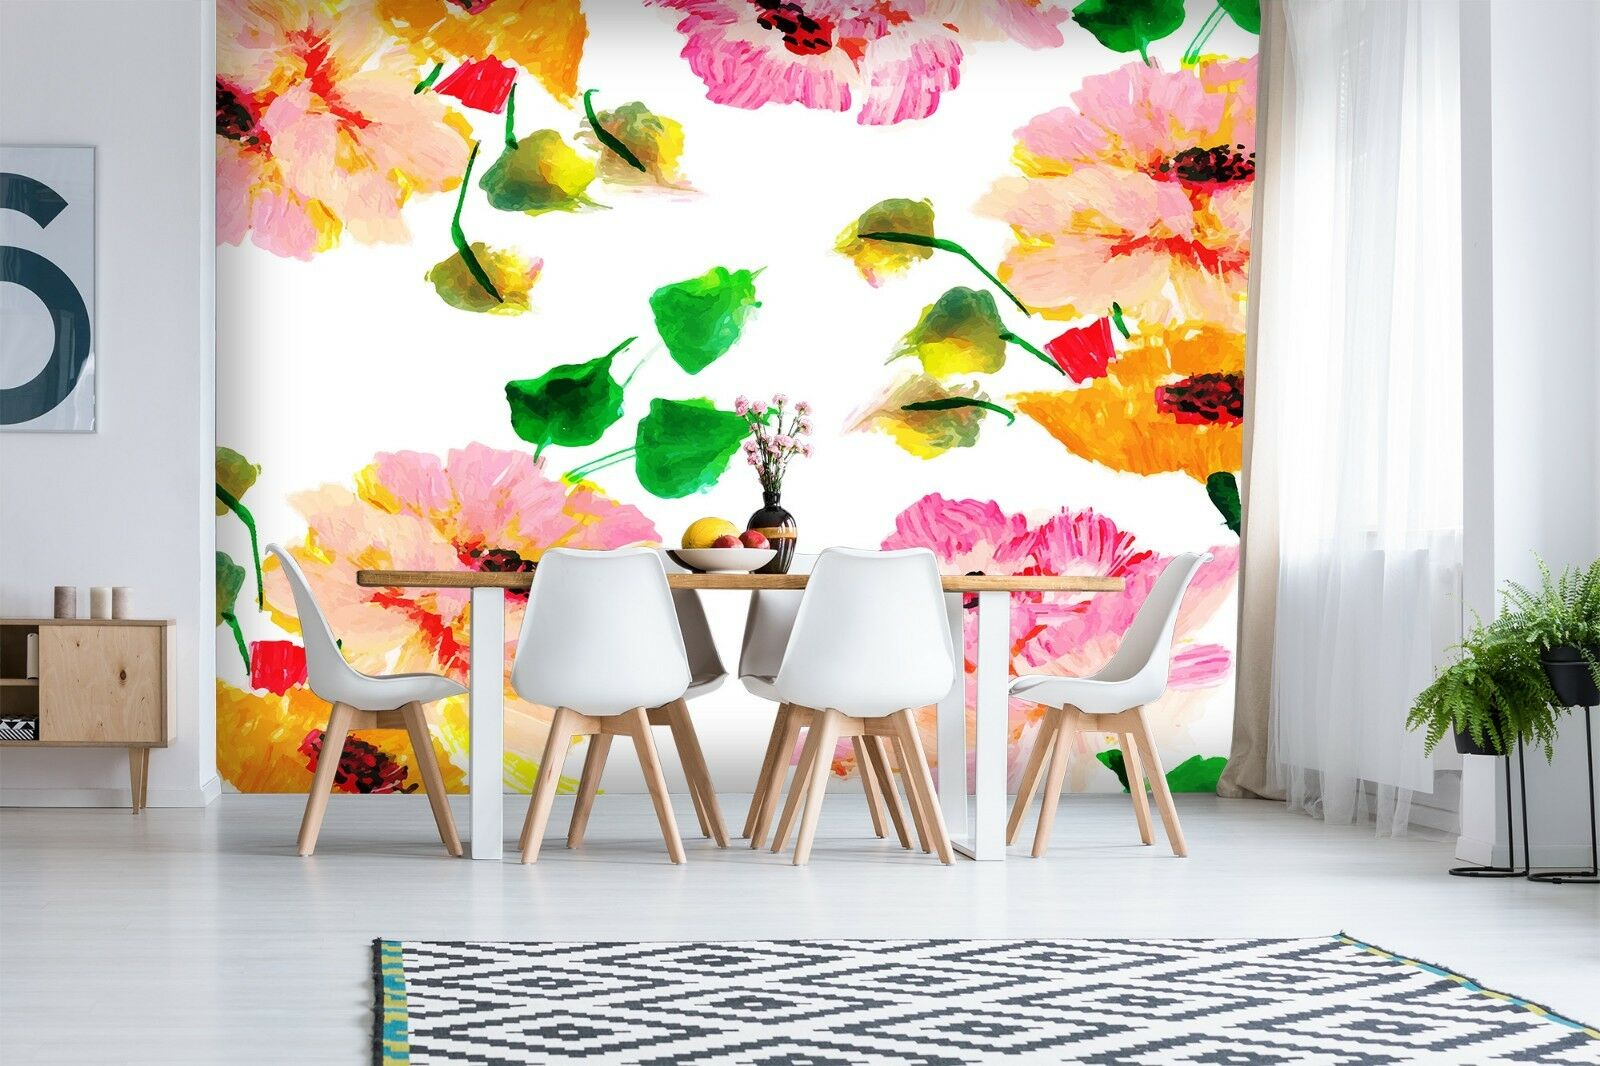 3D Flower 761 Wall Paper Print Wall Decal Deco Indoor Wall Murals US Summer